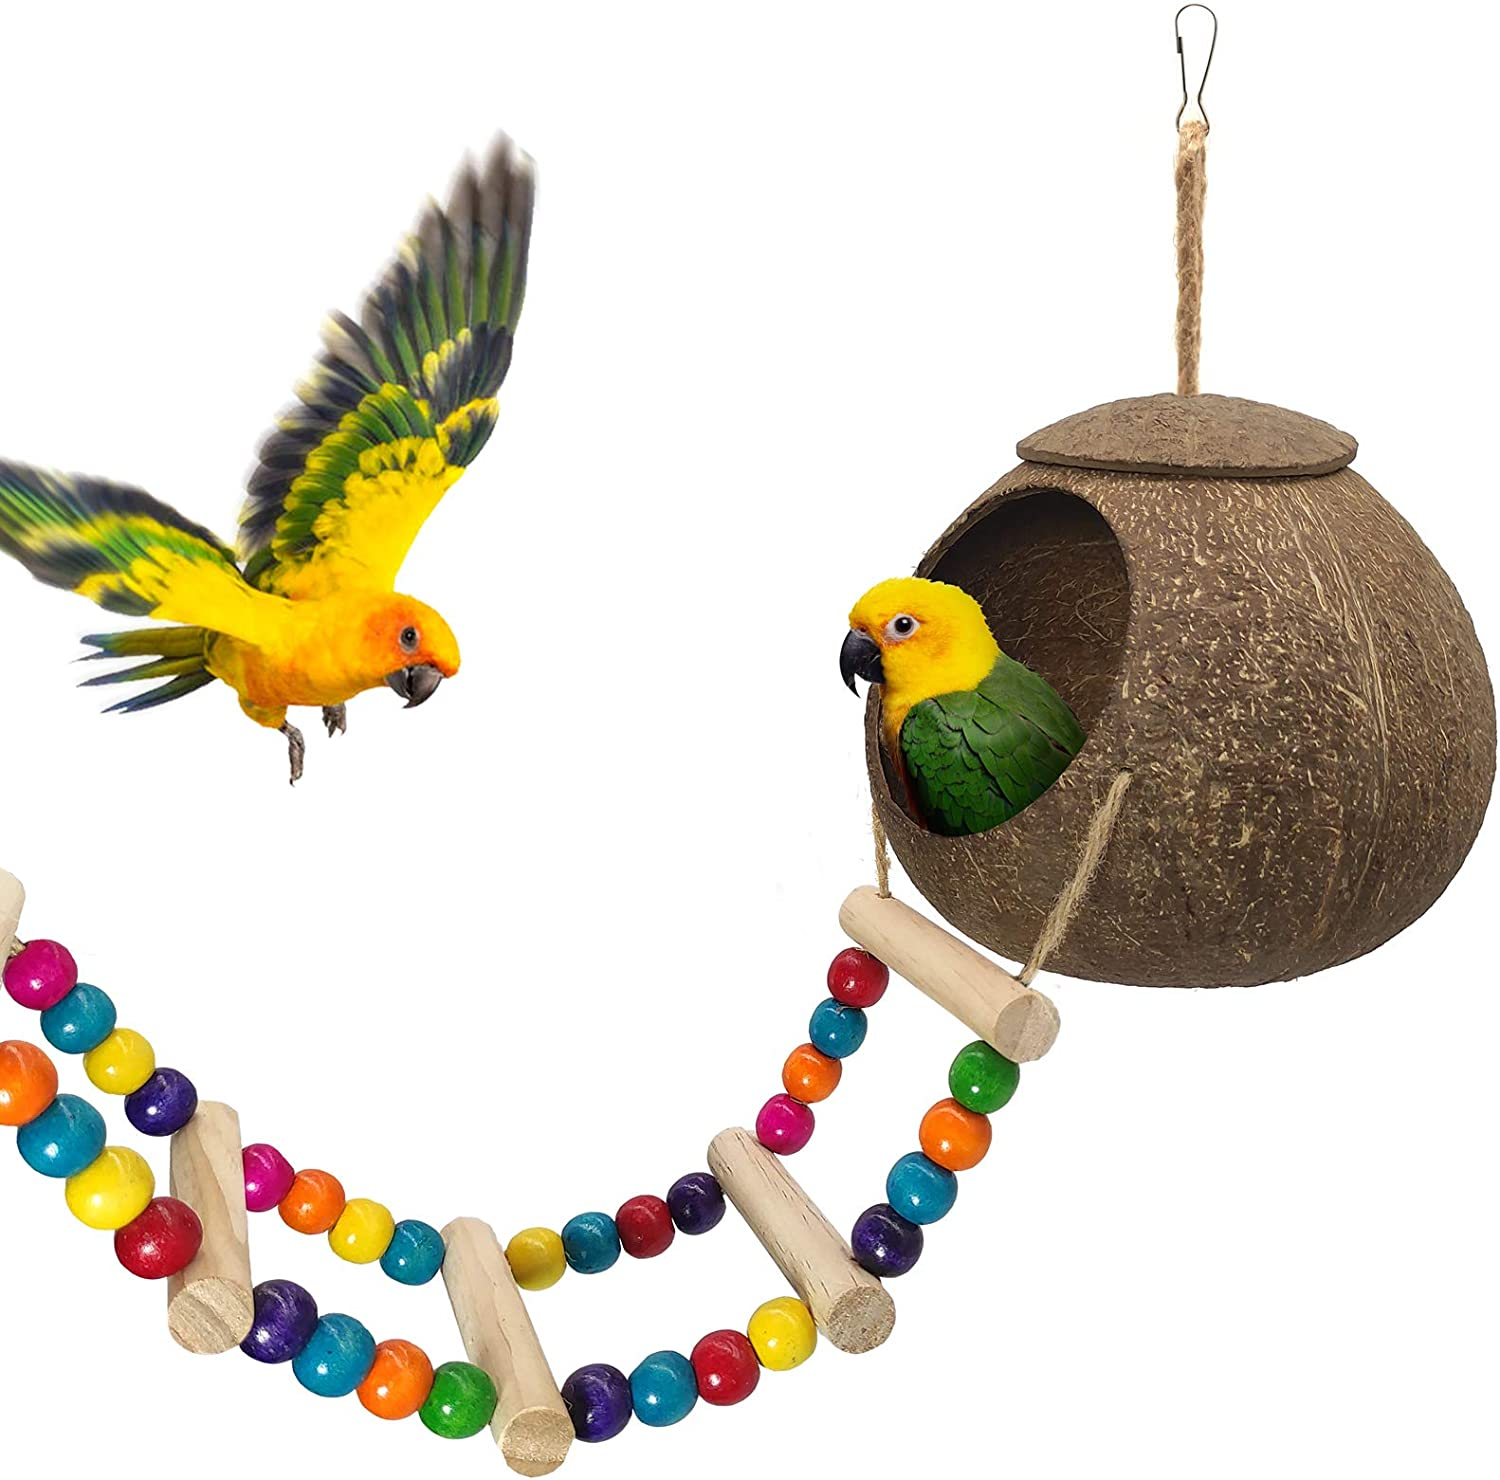 Cheap super special price Hanging Coconut Bird House with Fiber Ladder Special sale item She Natural